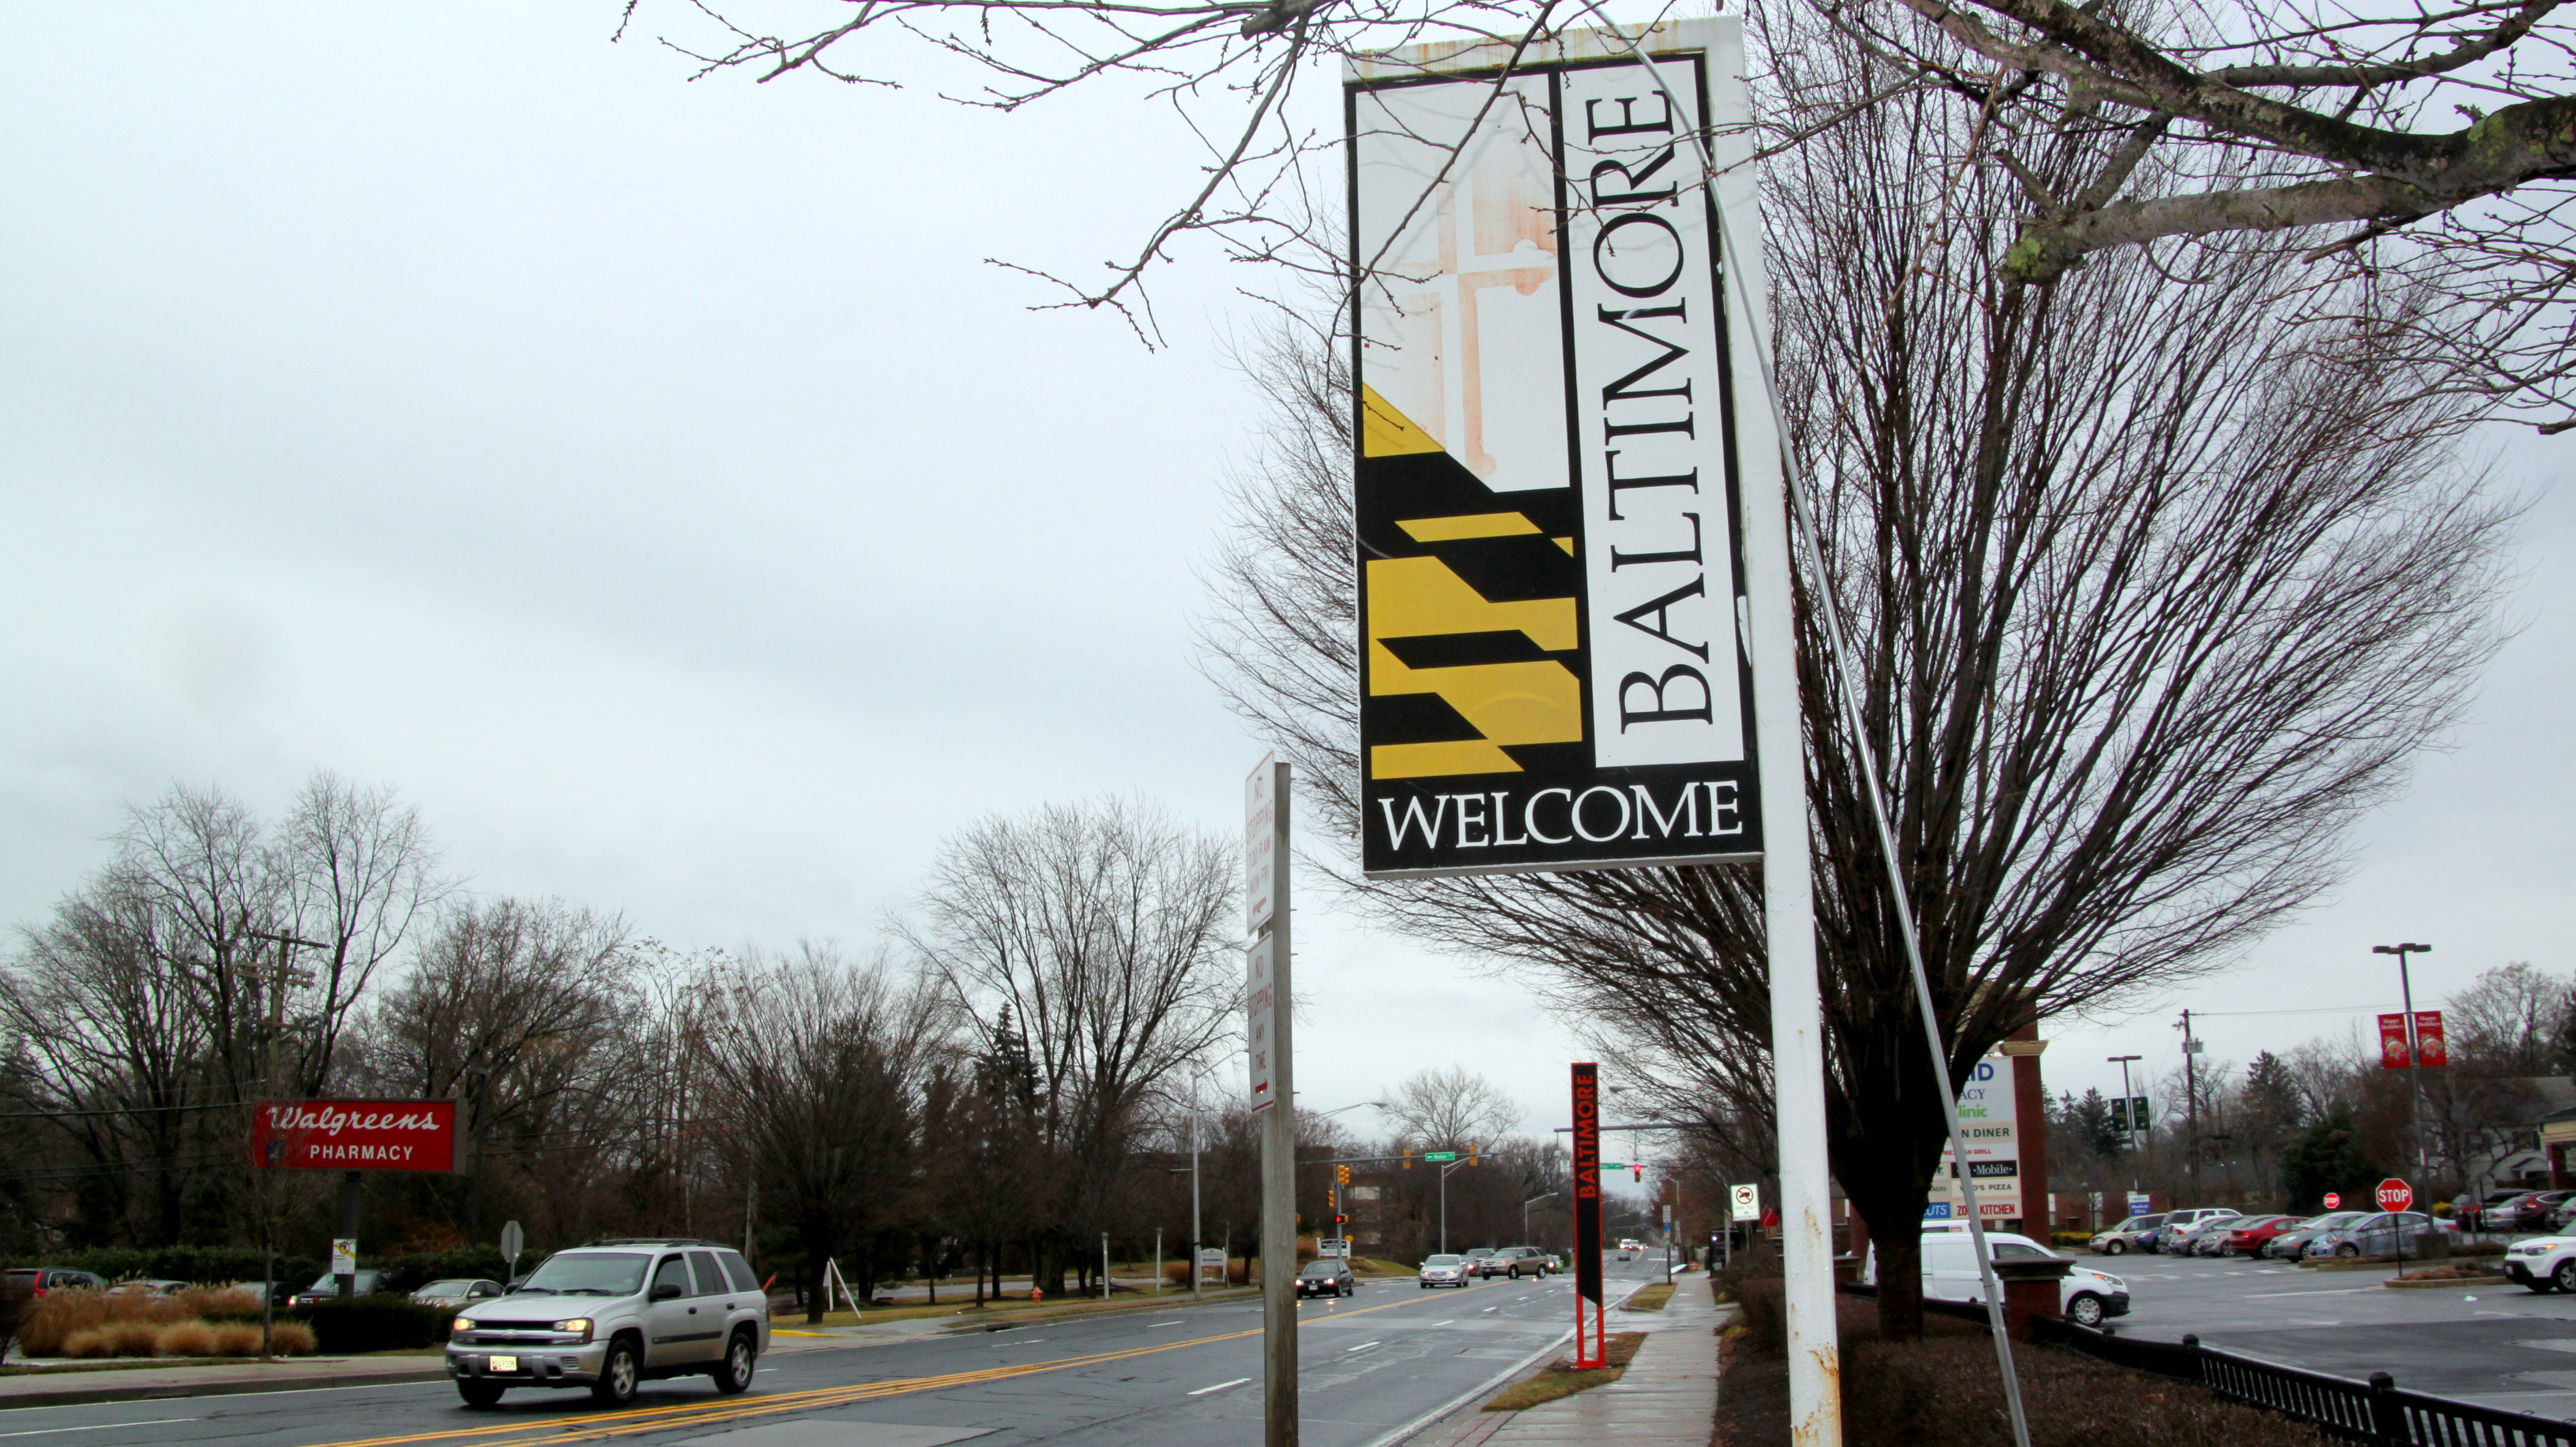 The city will replace or remove old Baltimore entrance signs like this flag-emblazoned